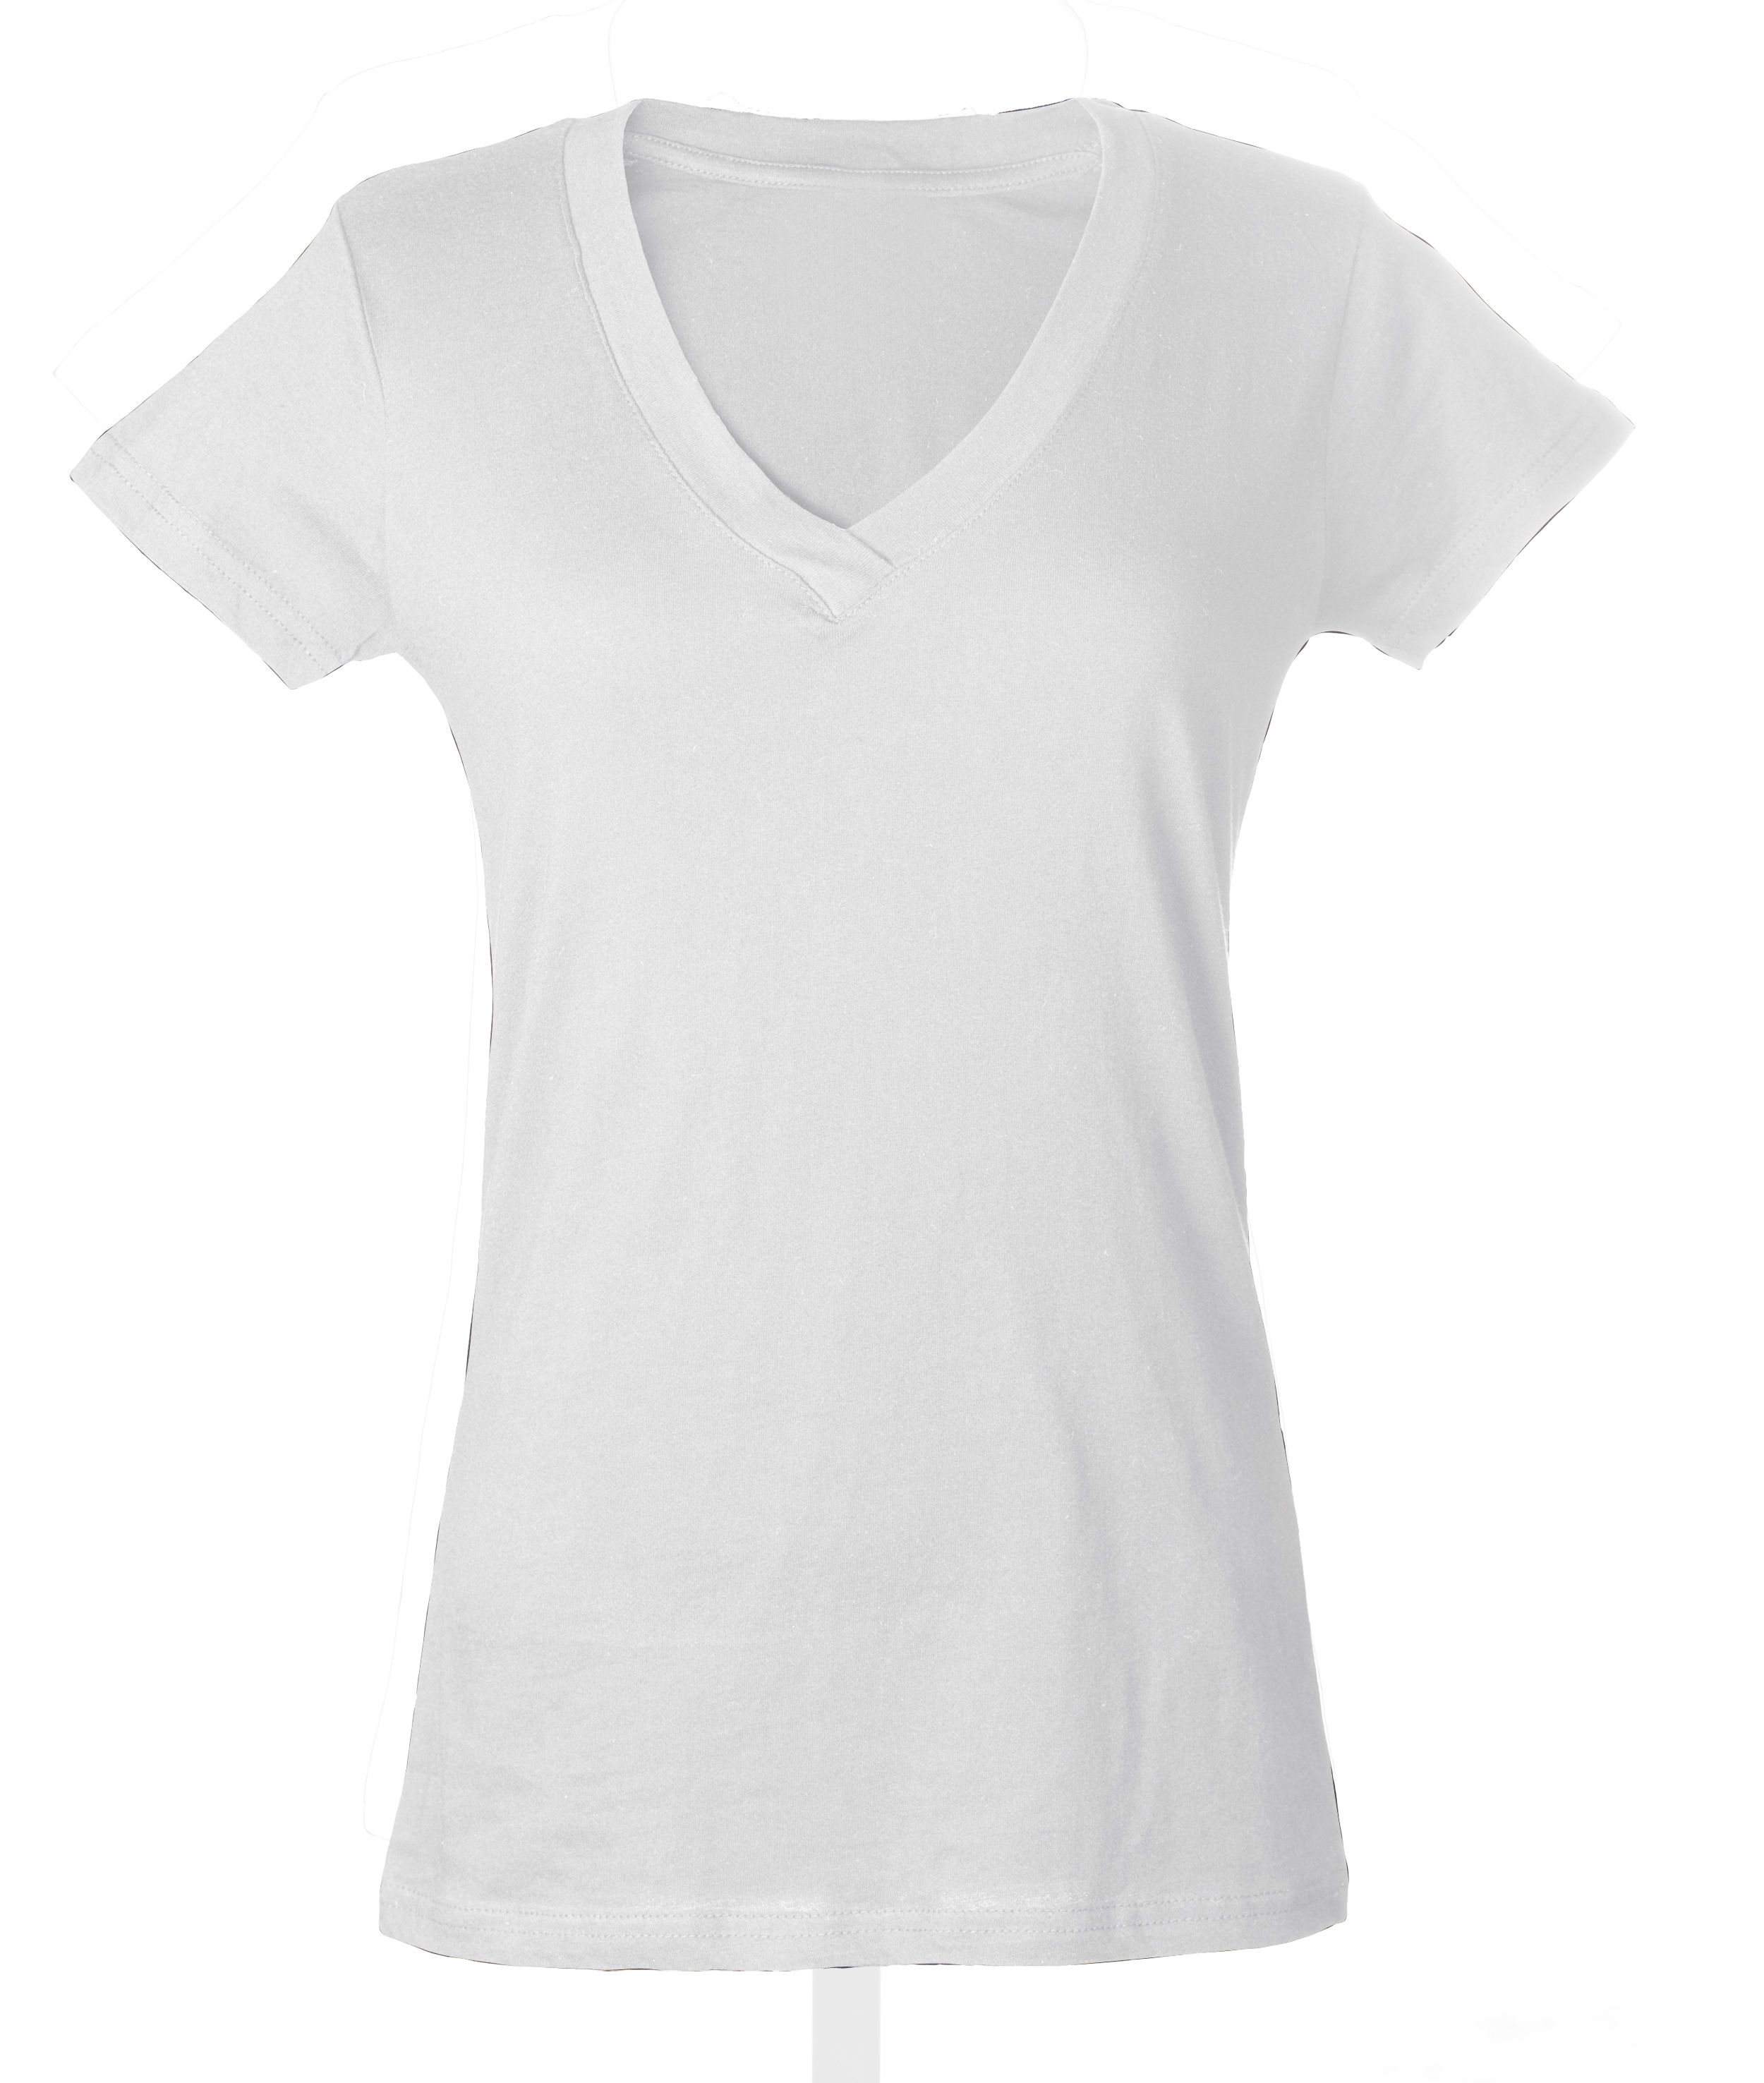 Magnificent 1 Button Template Big 10 Steps To Writing A Resume Round 100 Free Printable Resume Builder 17 Worst Things To Say On Your Resume Business Insider Youthful 2 Column Website Template Bright2 Page Resume Template Download White V Neck T Shirt Women | T Shirts | Pinterest | Shirts, White ..